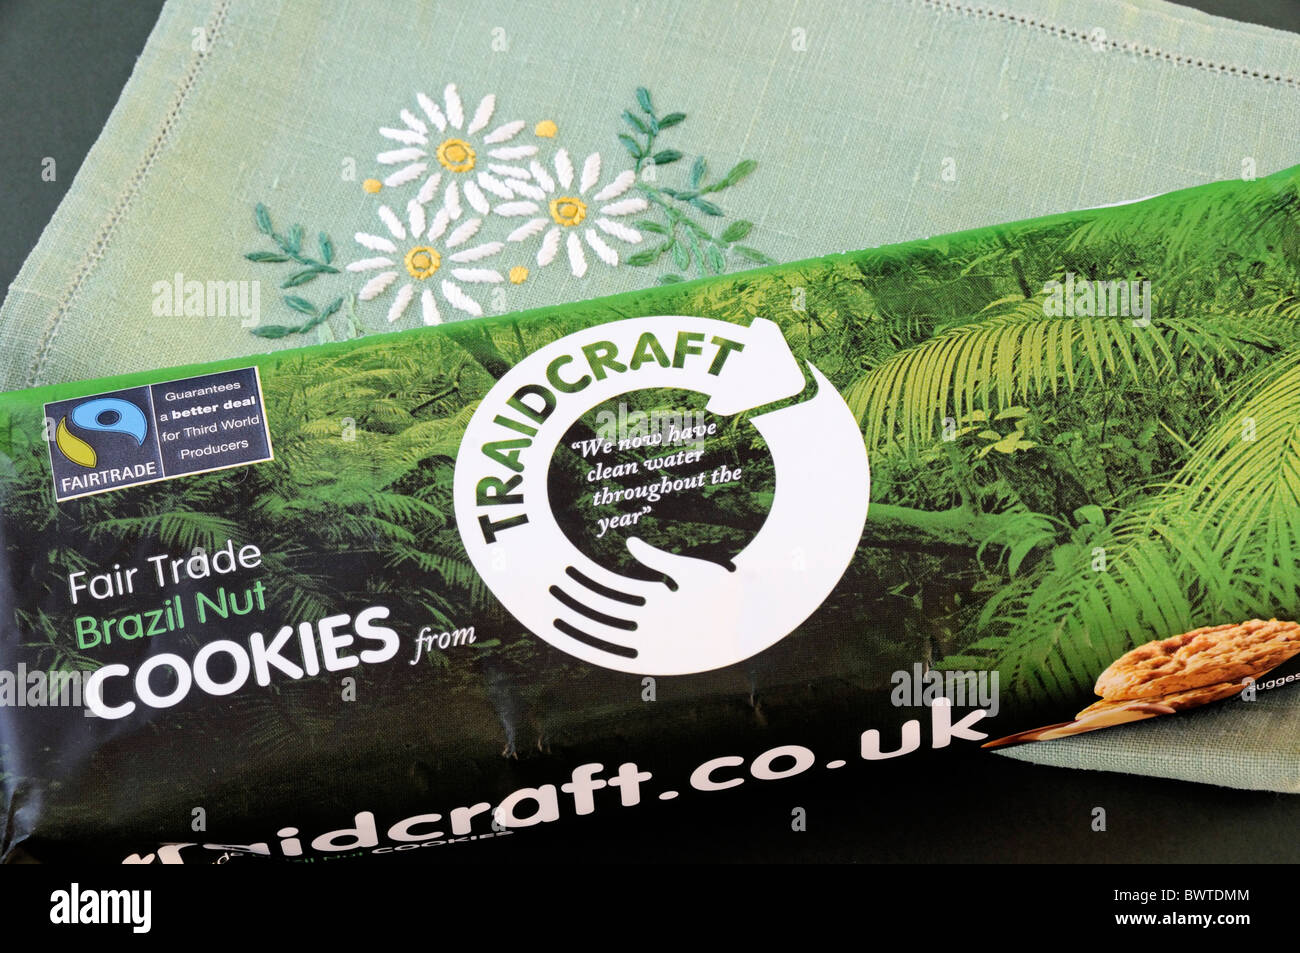 Packet of Traidcraft Fair Trade Brazil Nut Cookies - Stock Image